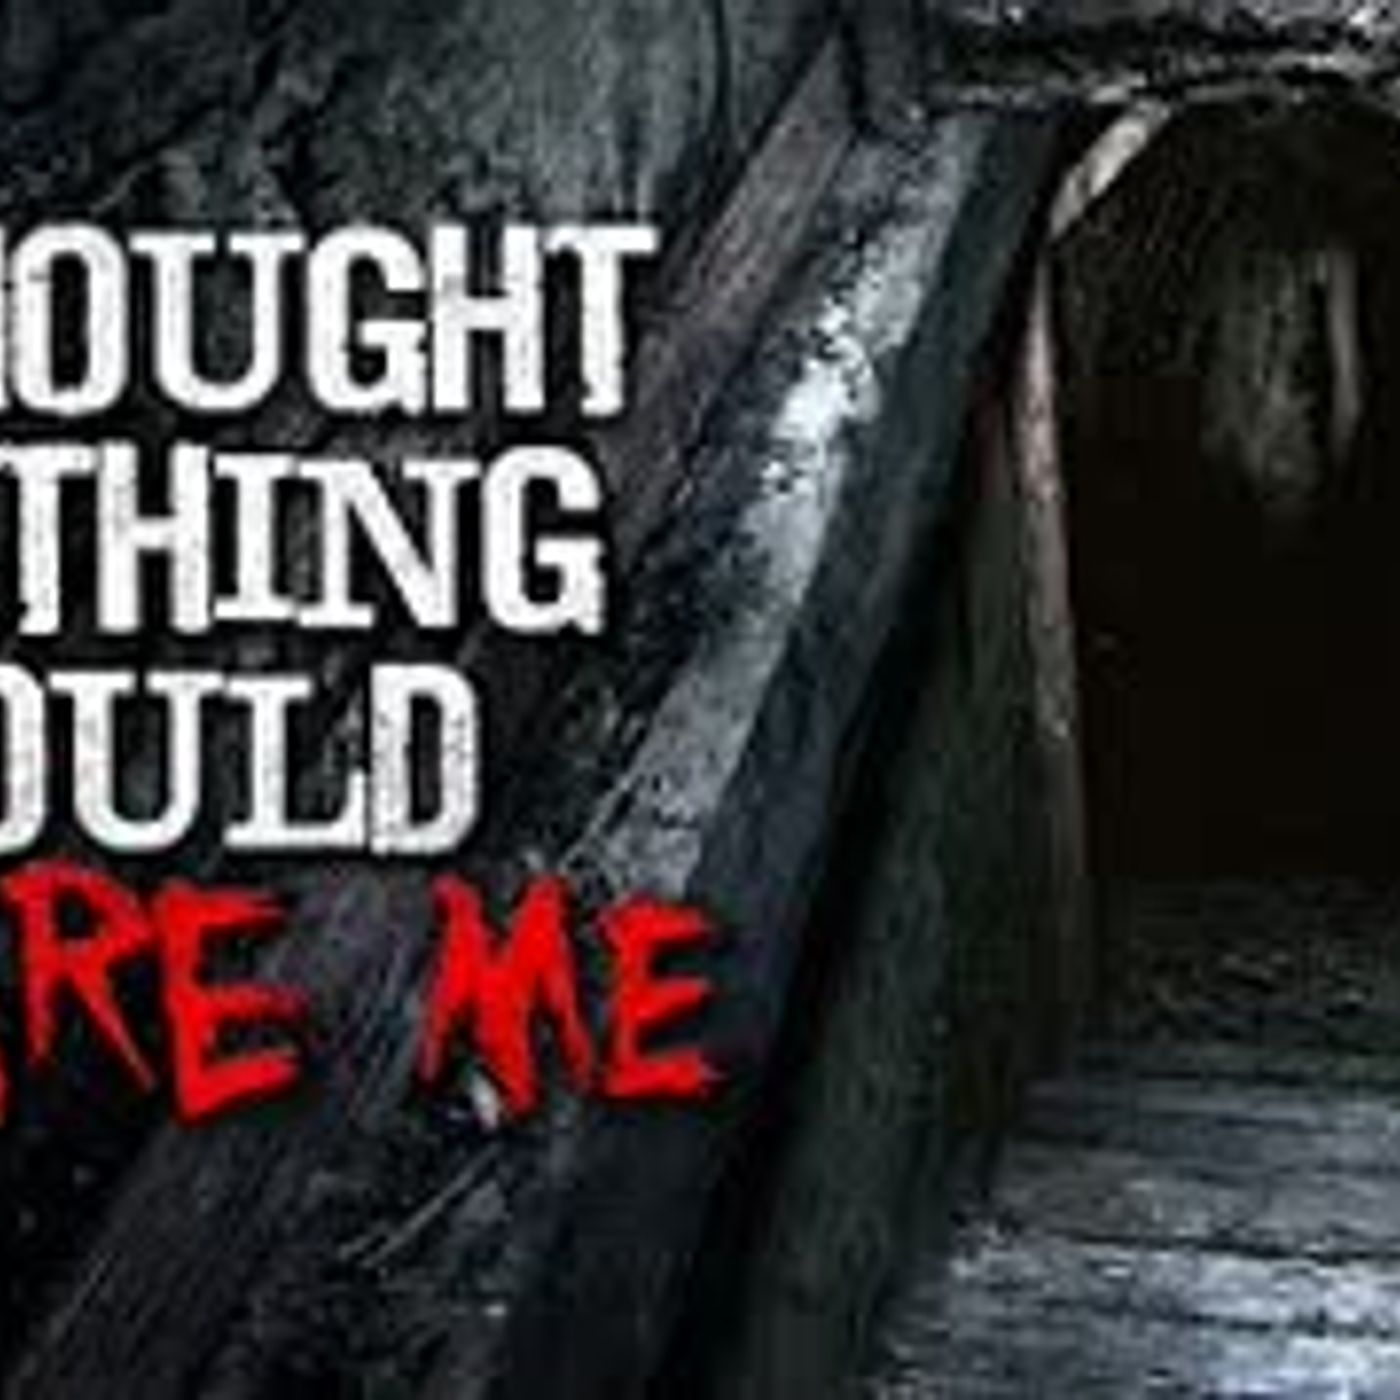 """I thought nothing could scare me..."" Creepypasta"